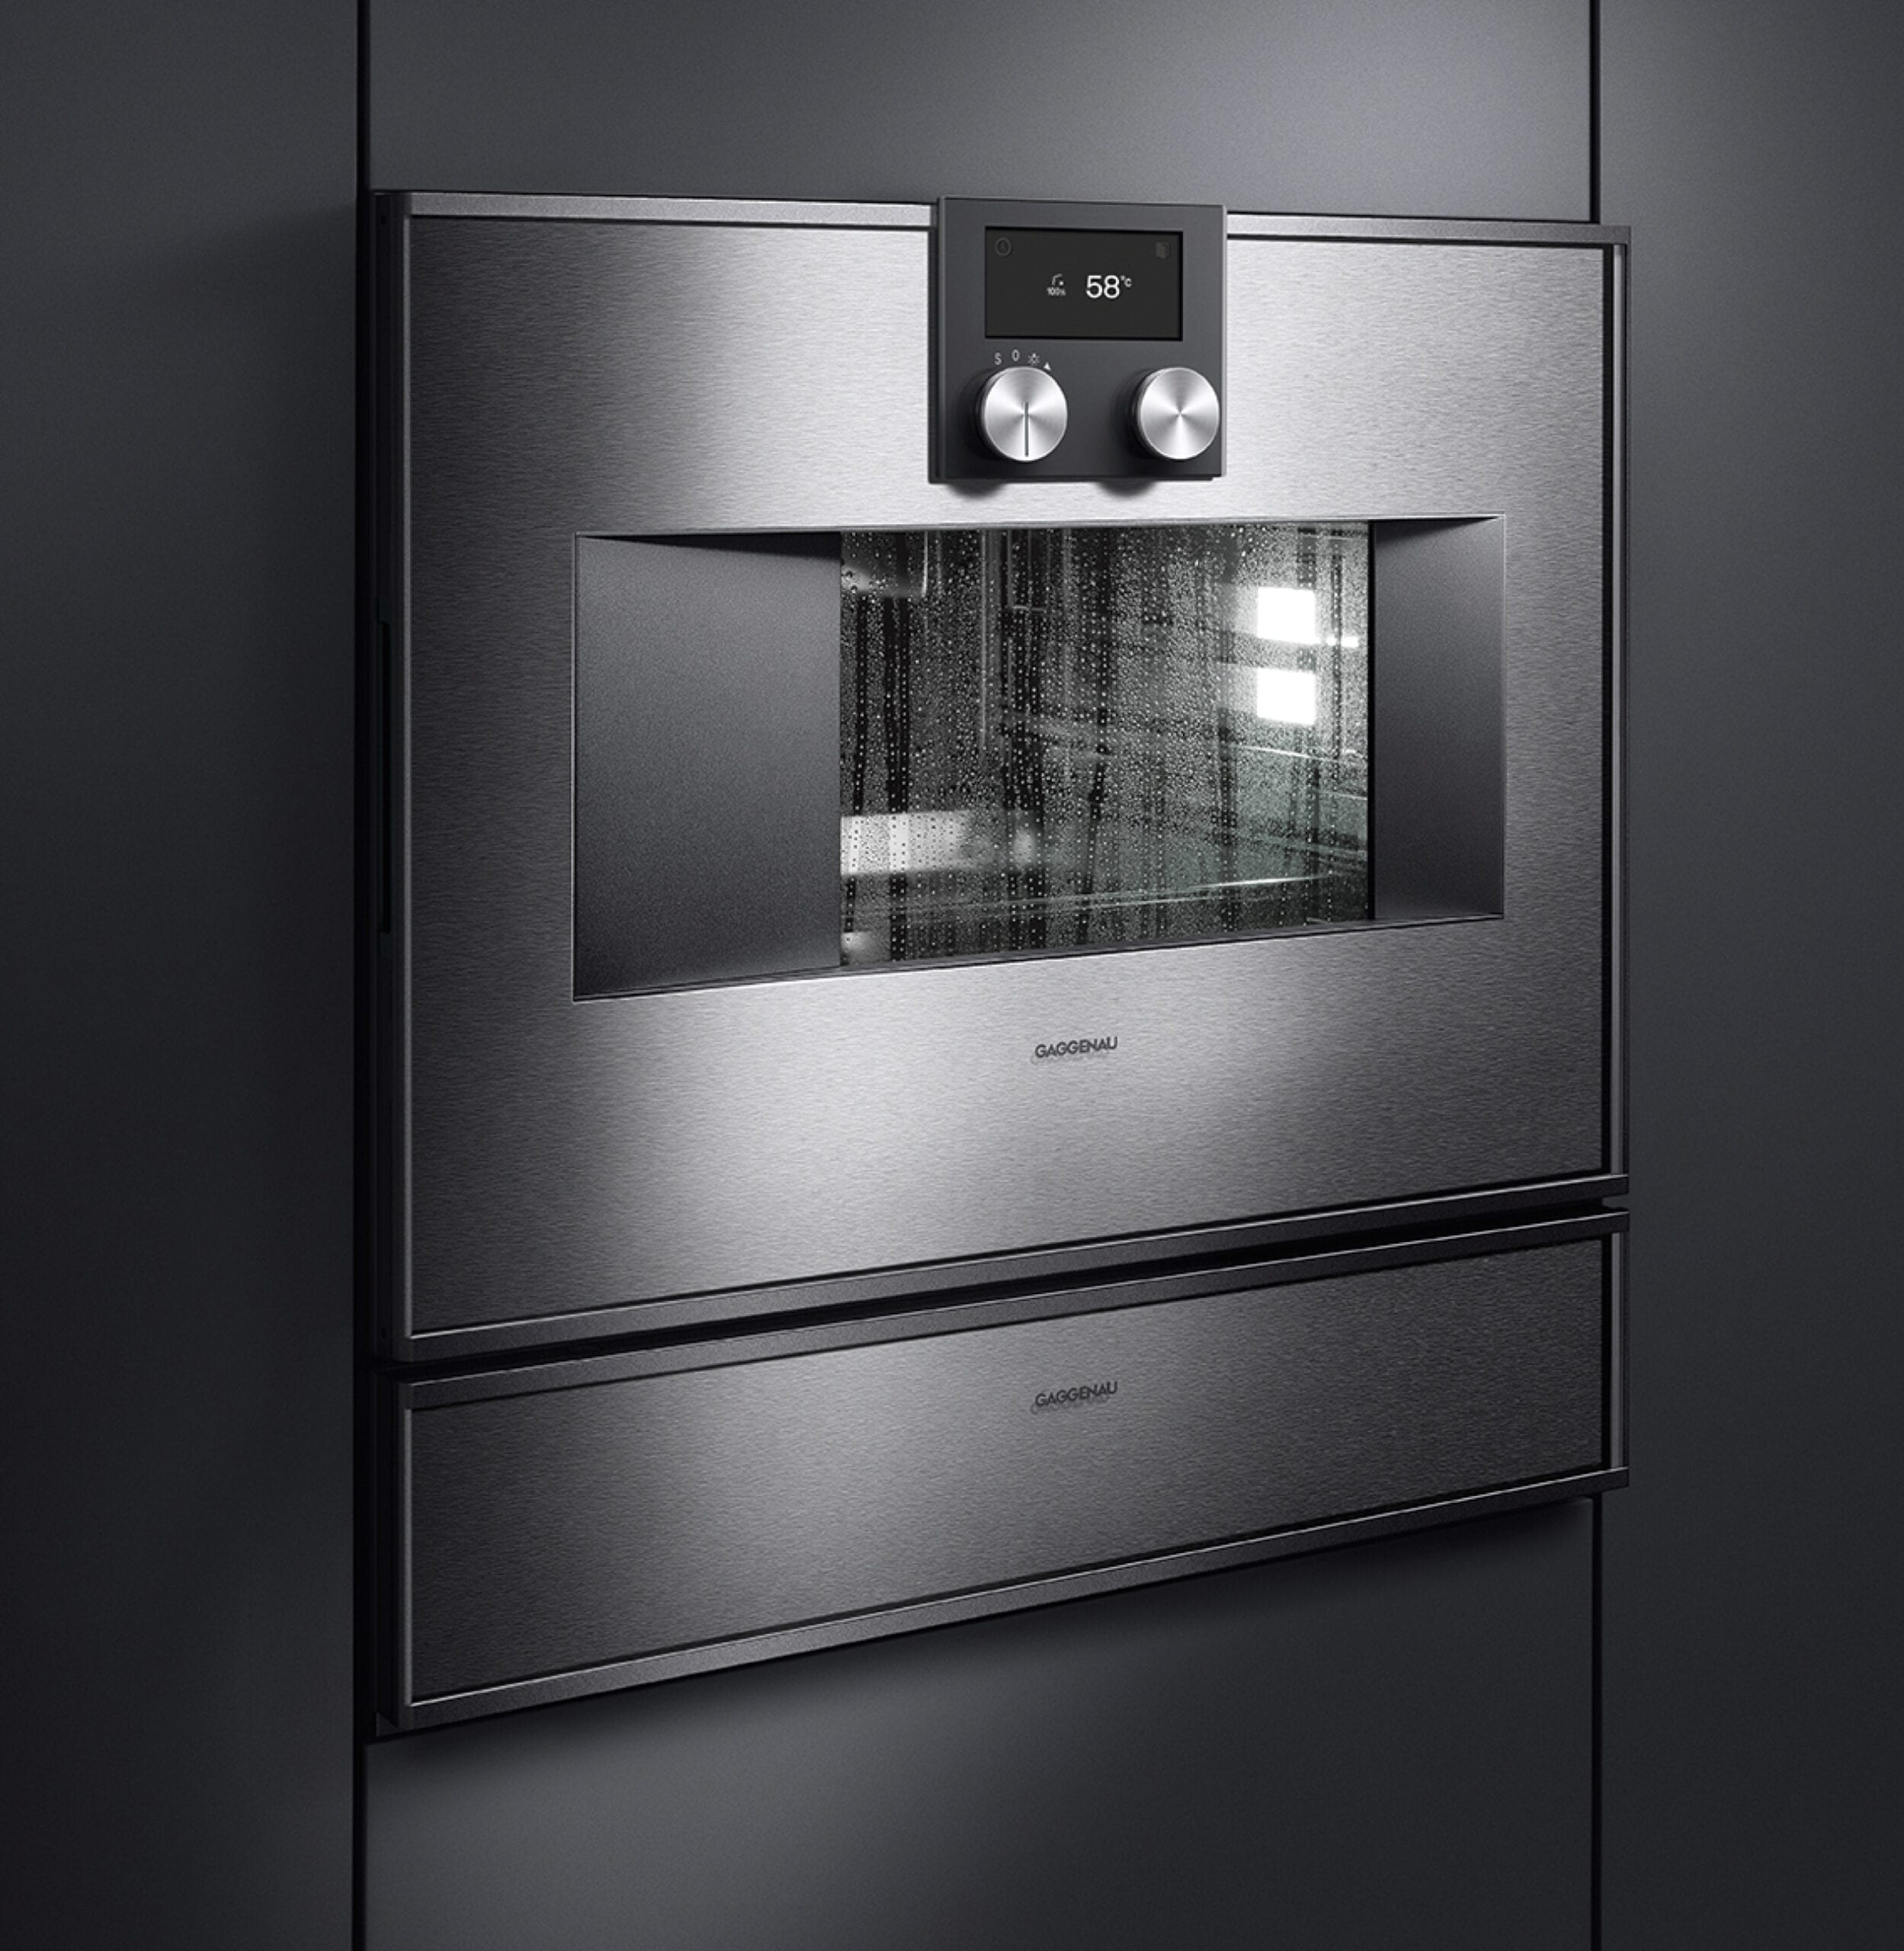 Mcim02474046 Ovens 400 Series   Such Designs, London